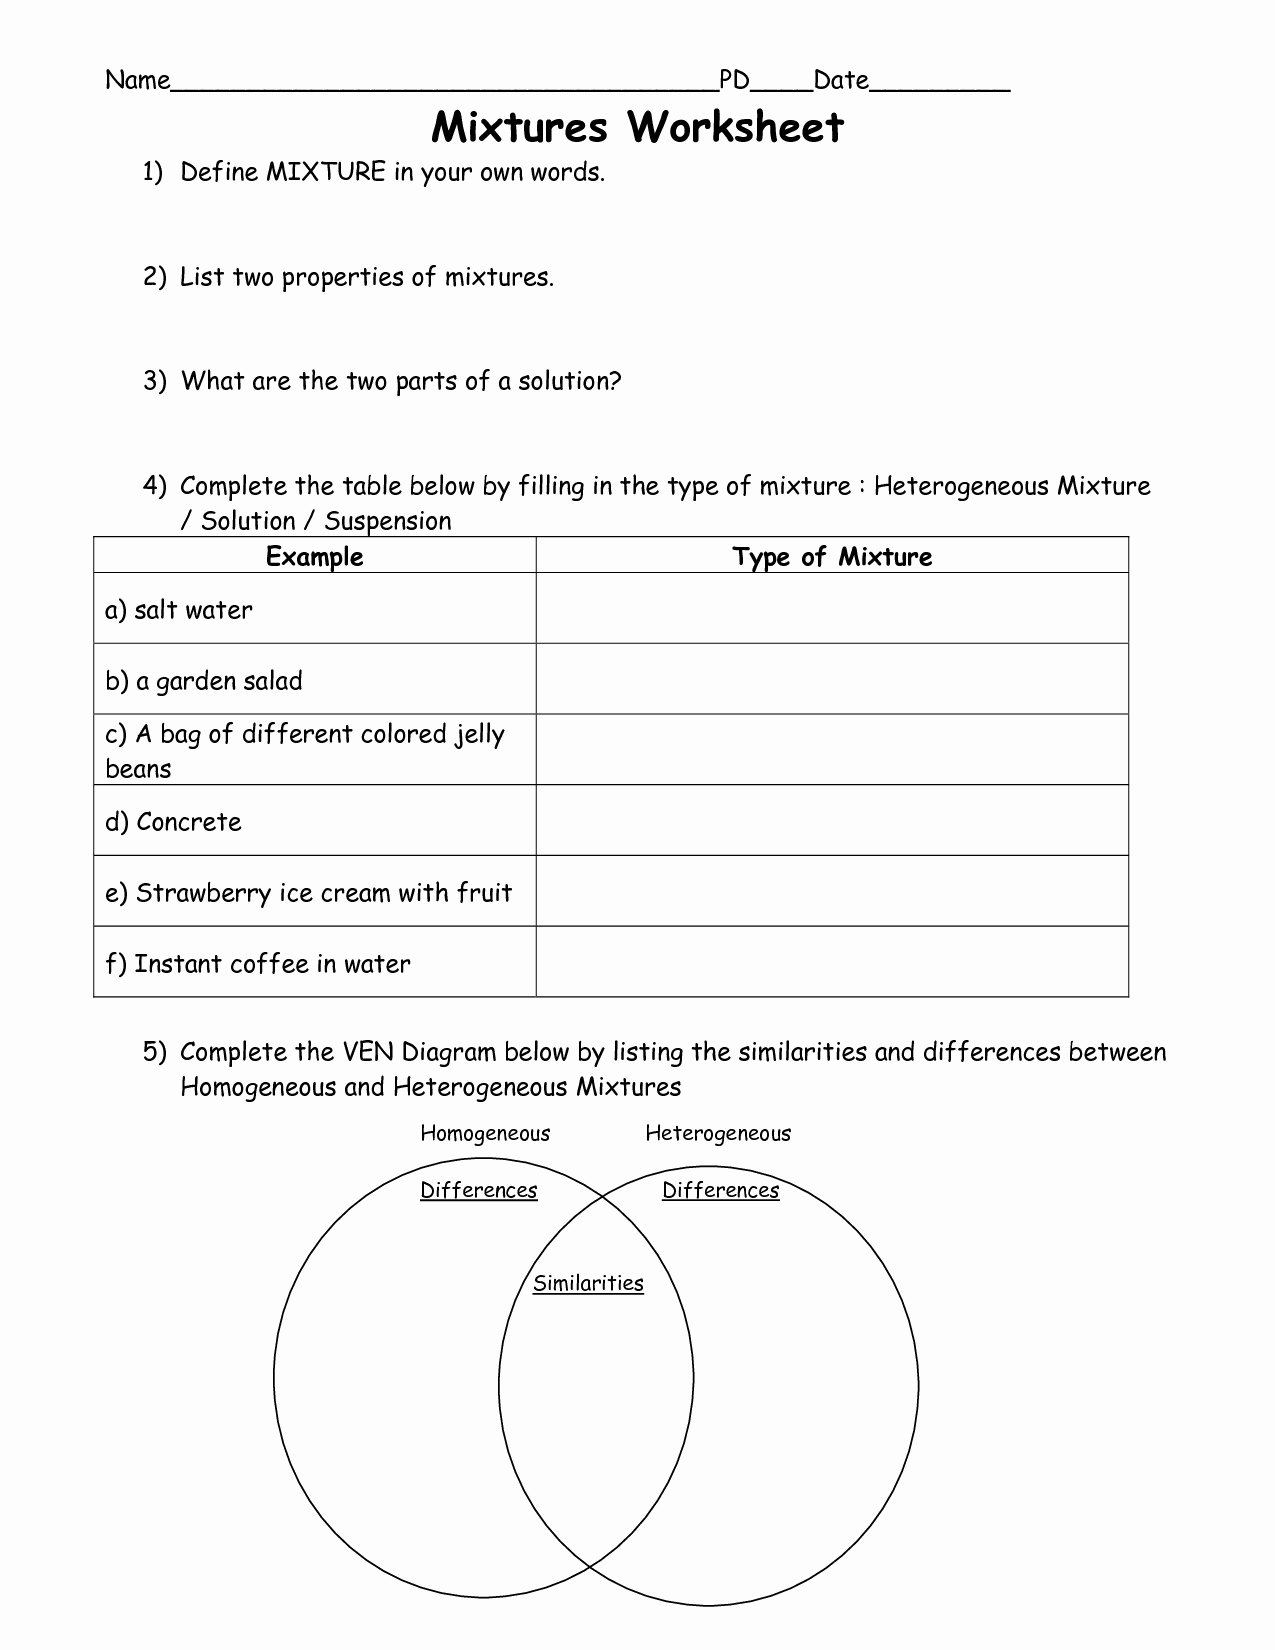 Mixtures and solutions Worksheet Answers Fresh 11 Best Of 5th Grade Science Mixtures and solutions